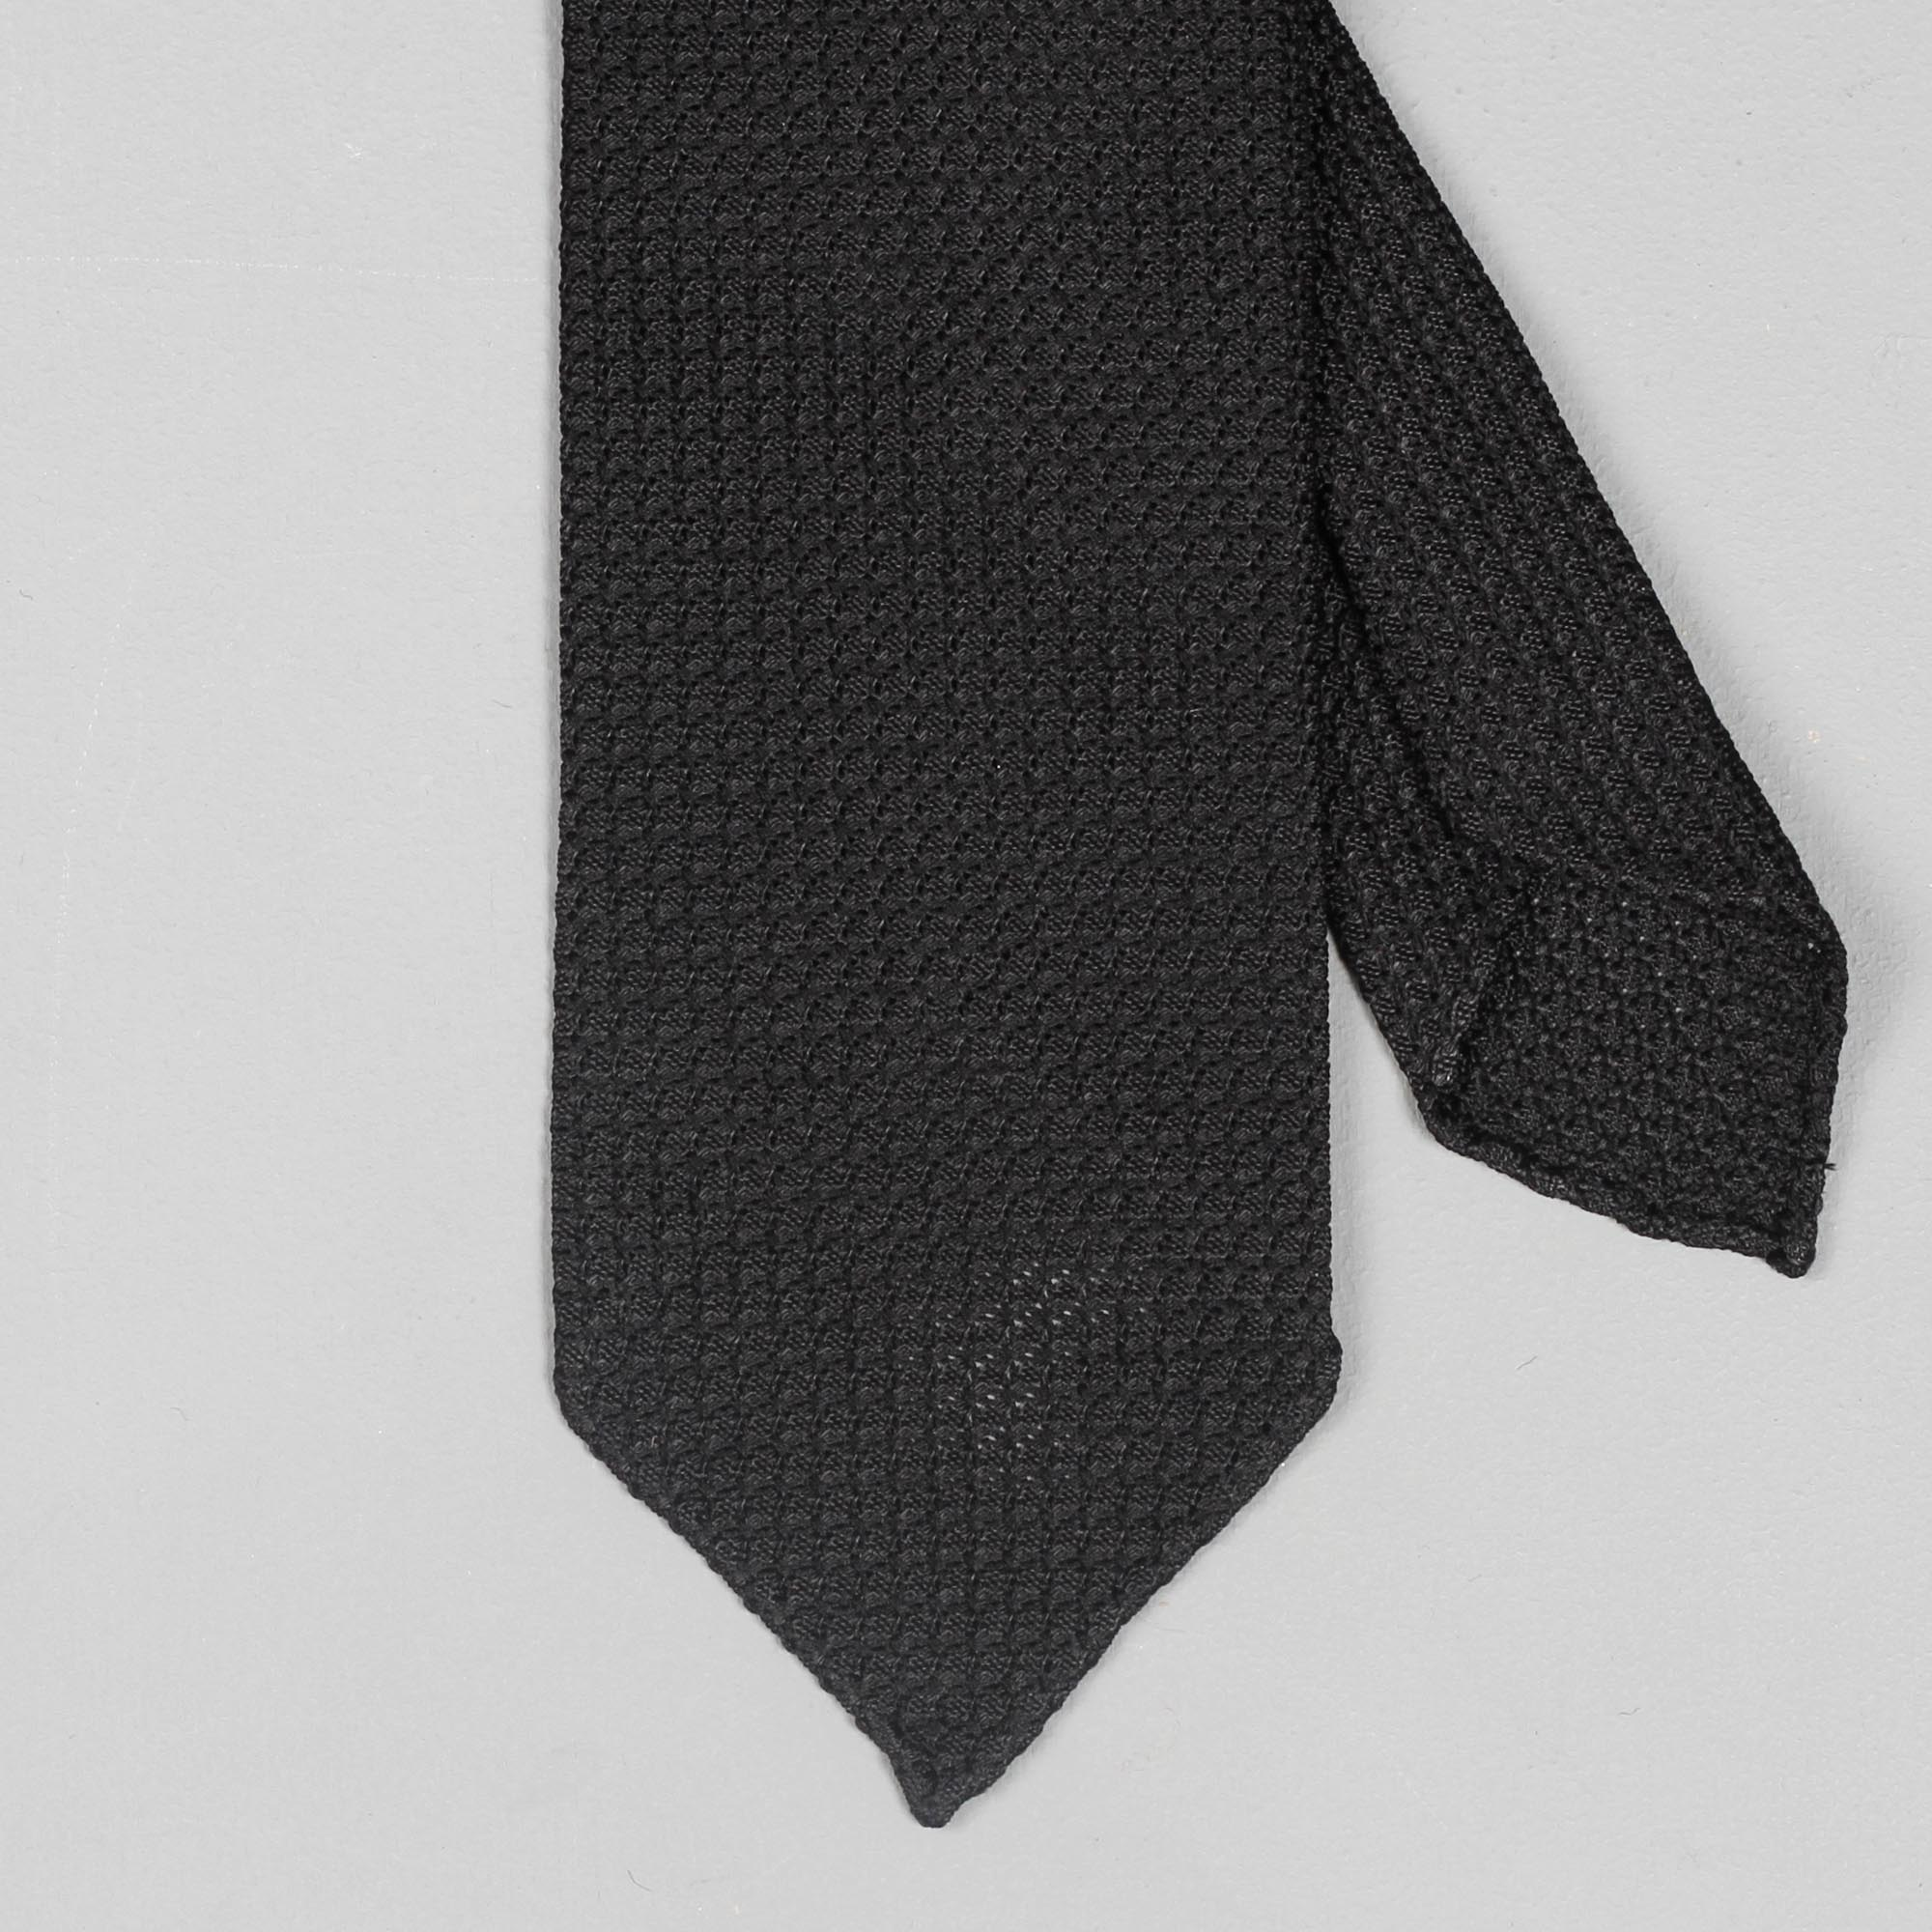 b9a4c4a1d639 Drake's Handrolled Large Knot Grenadine Tie